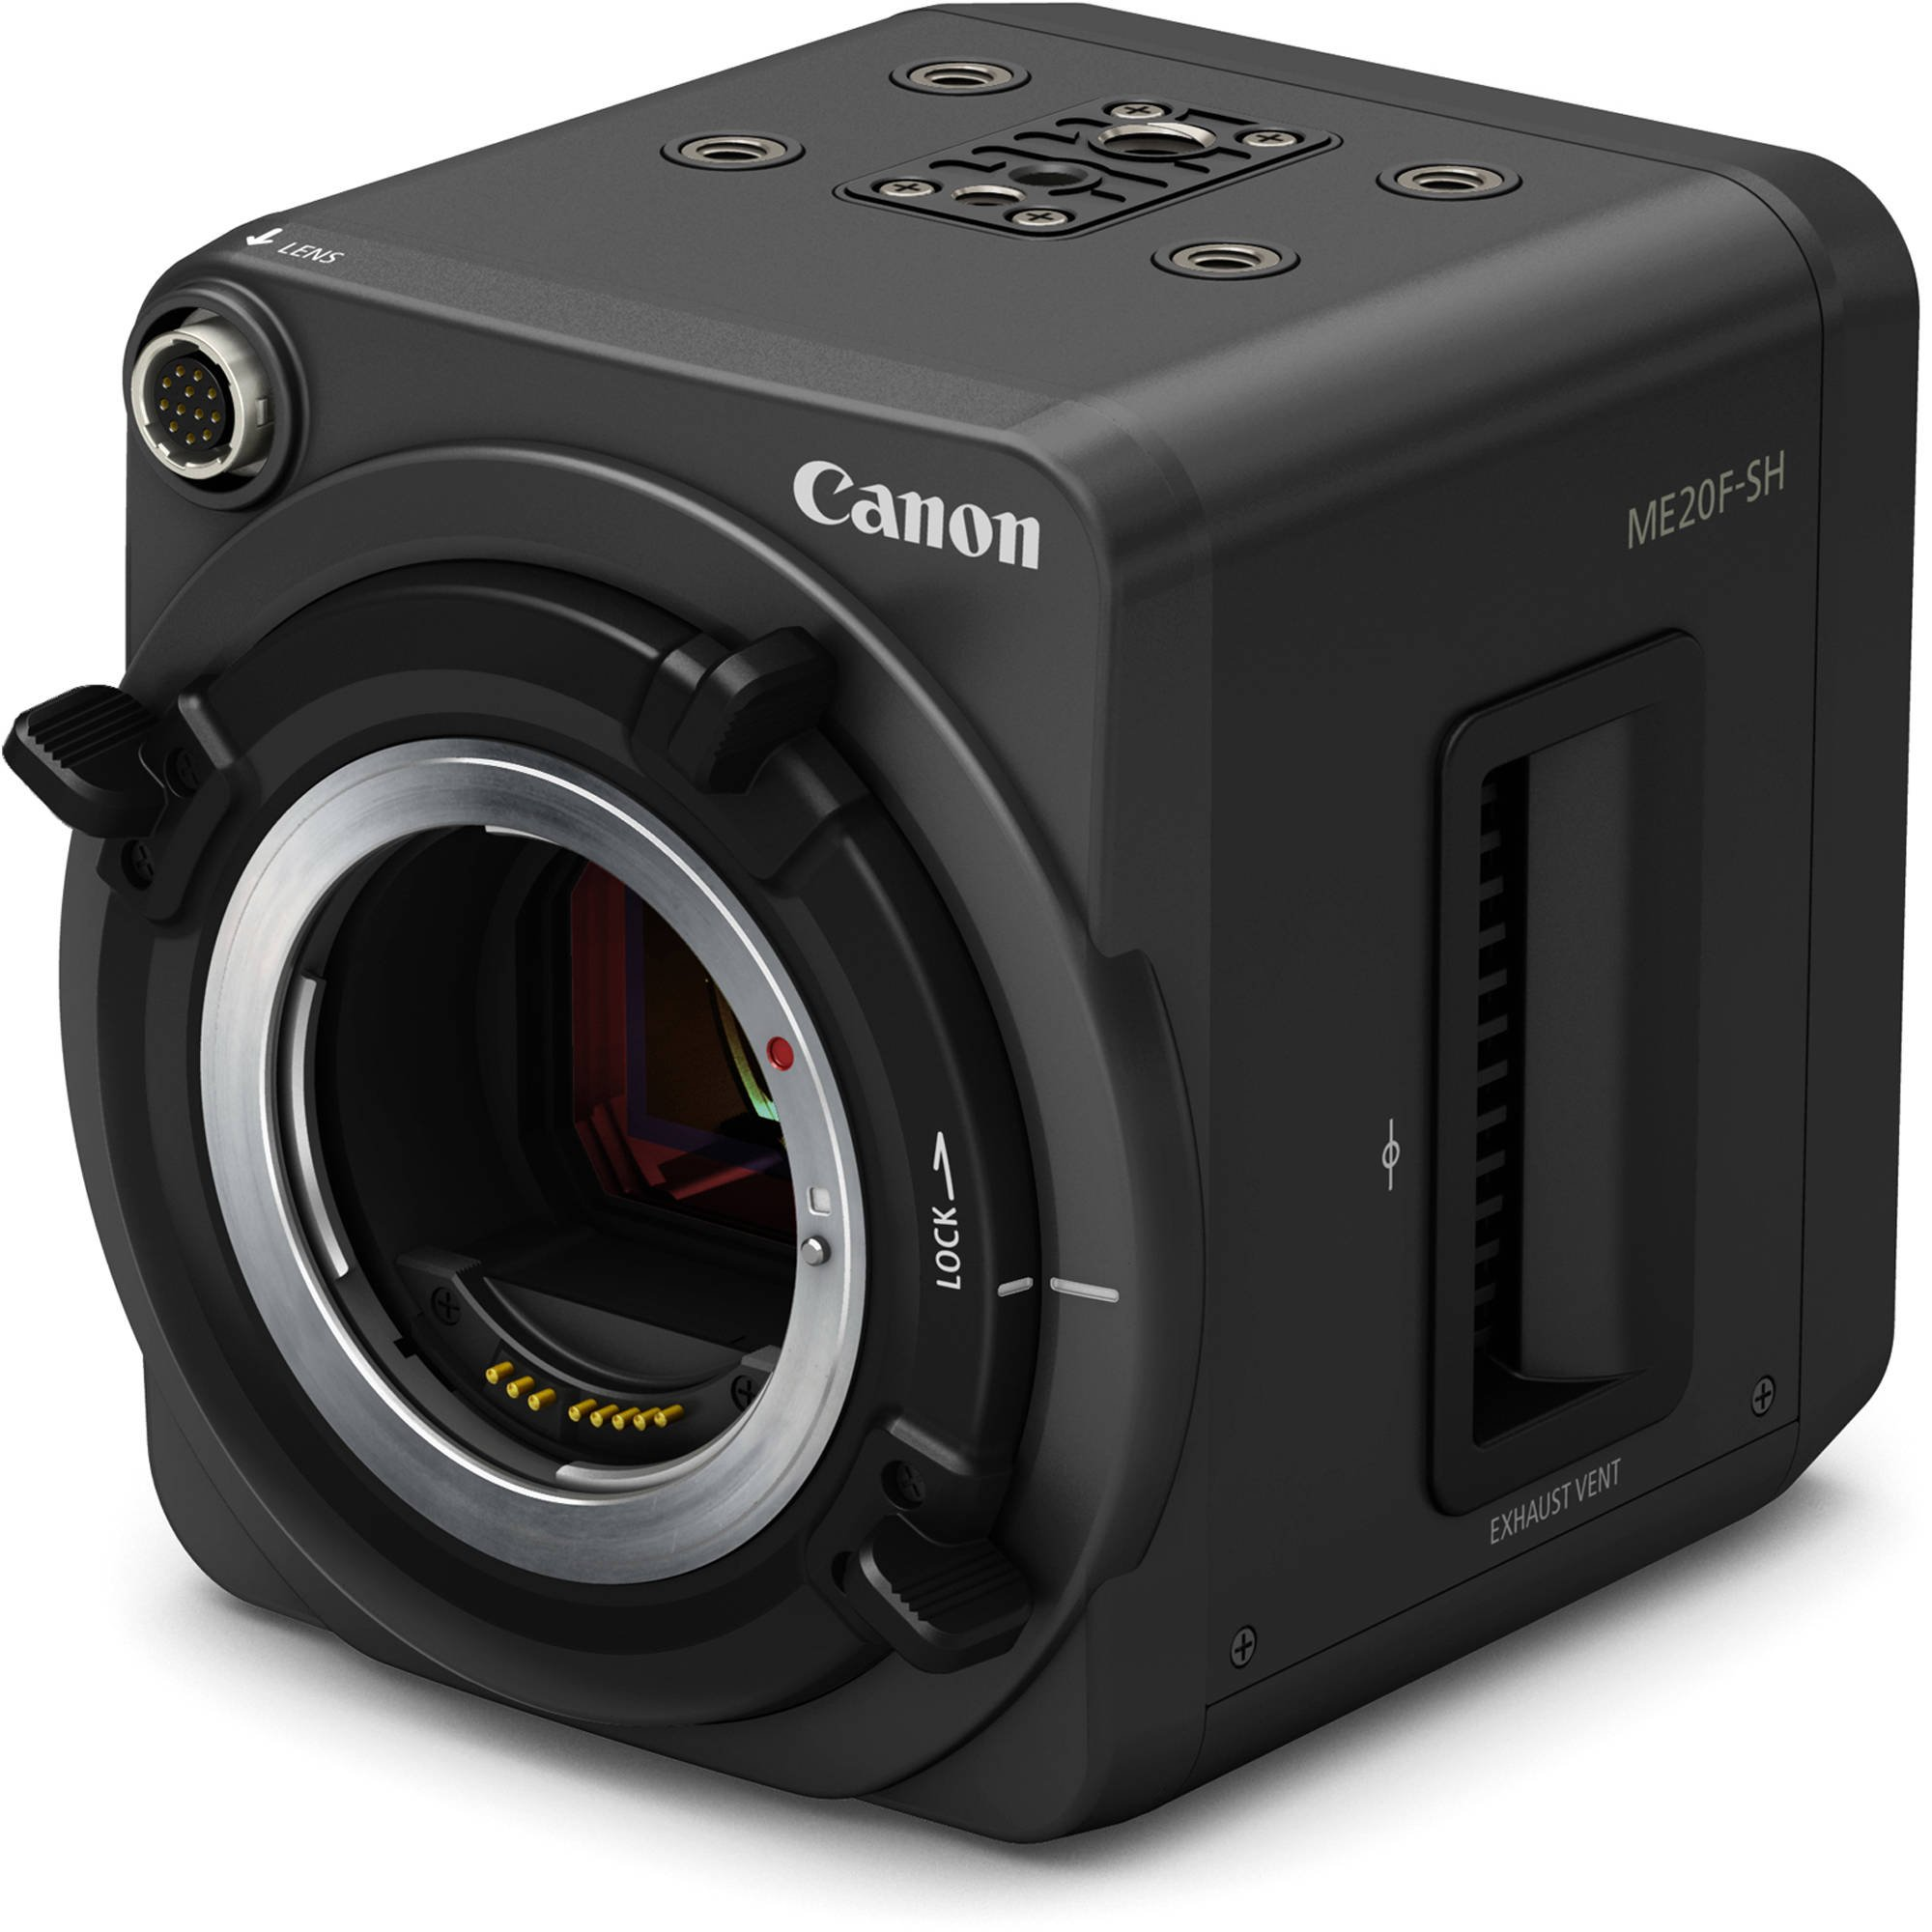 canonme20f sh image